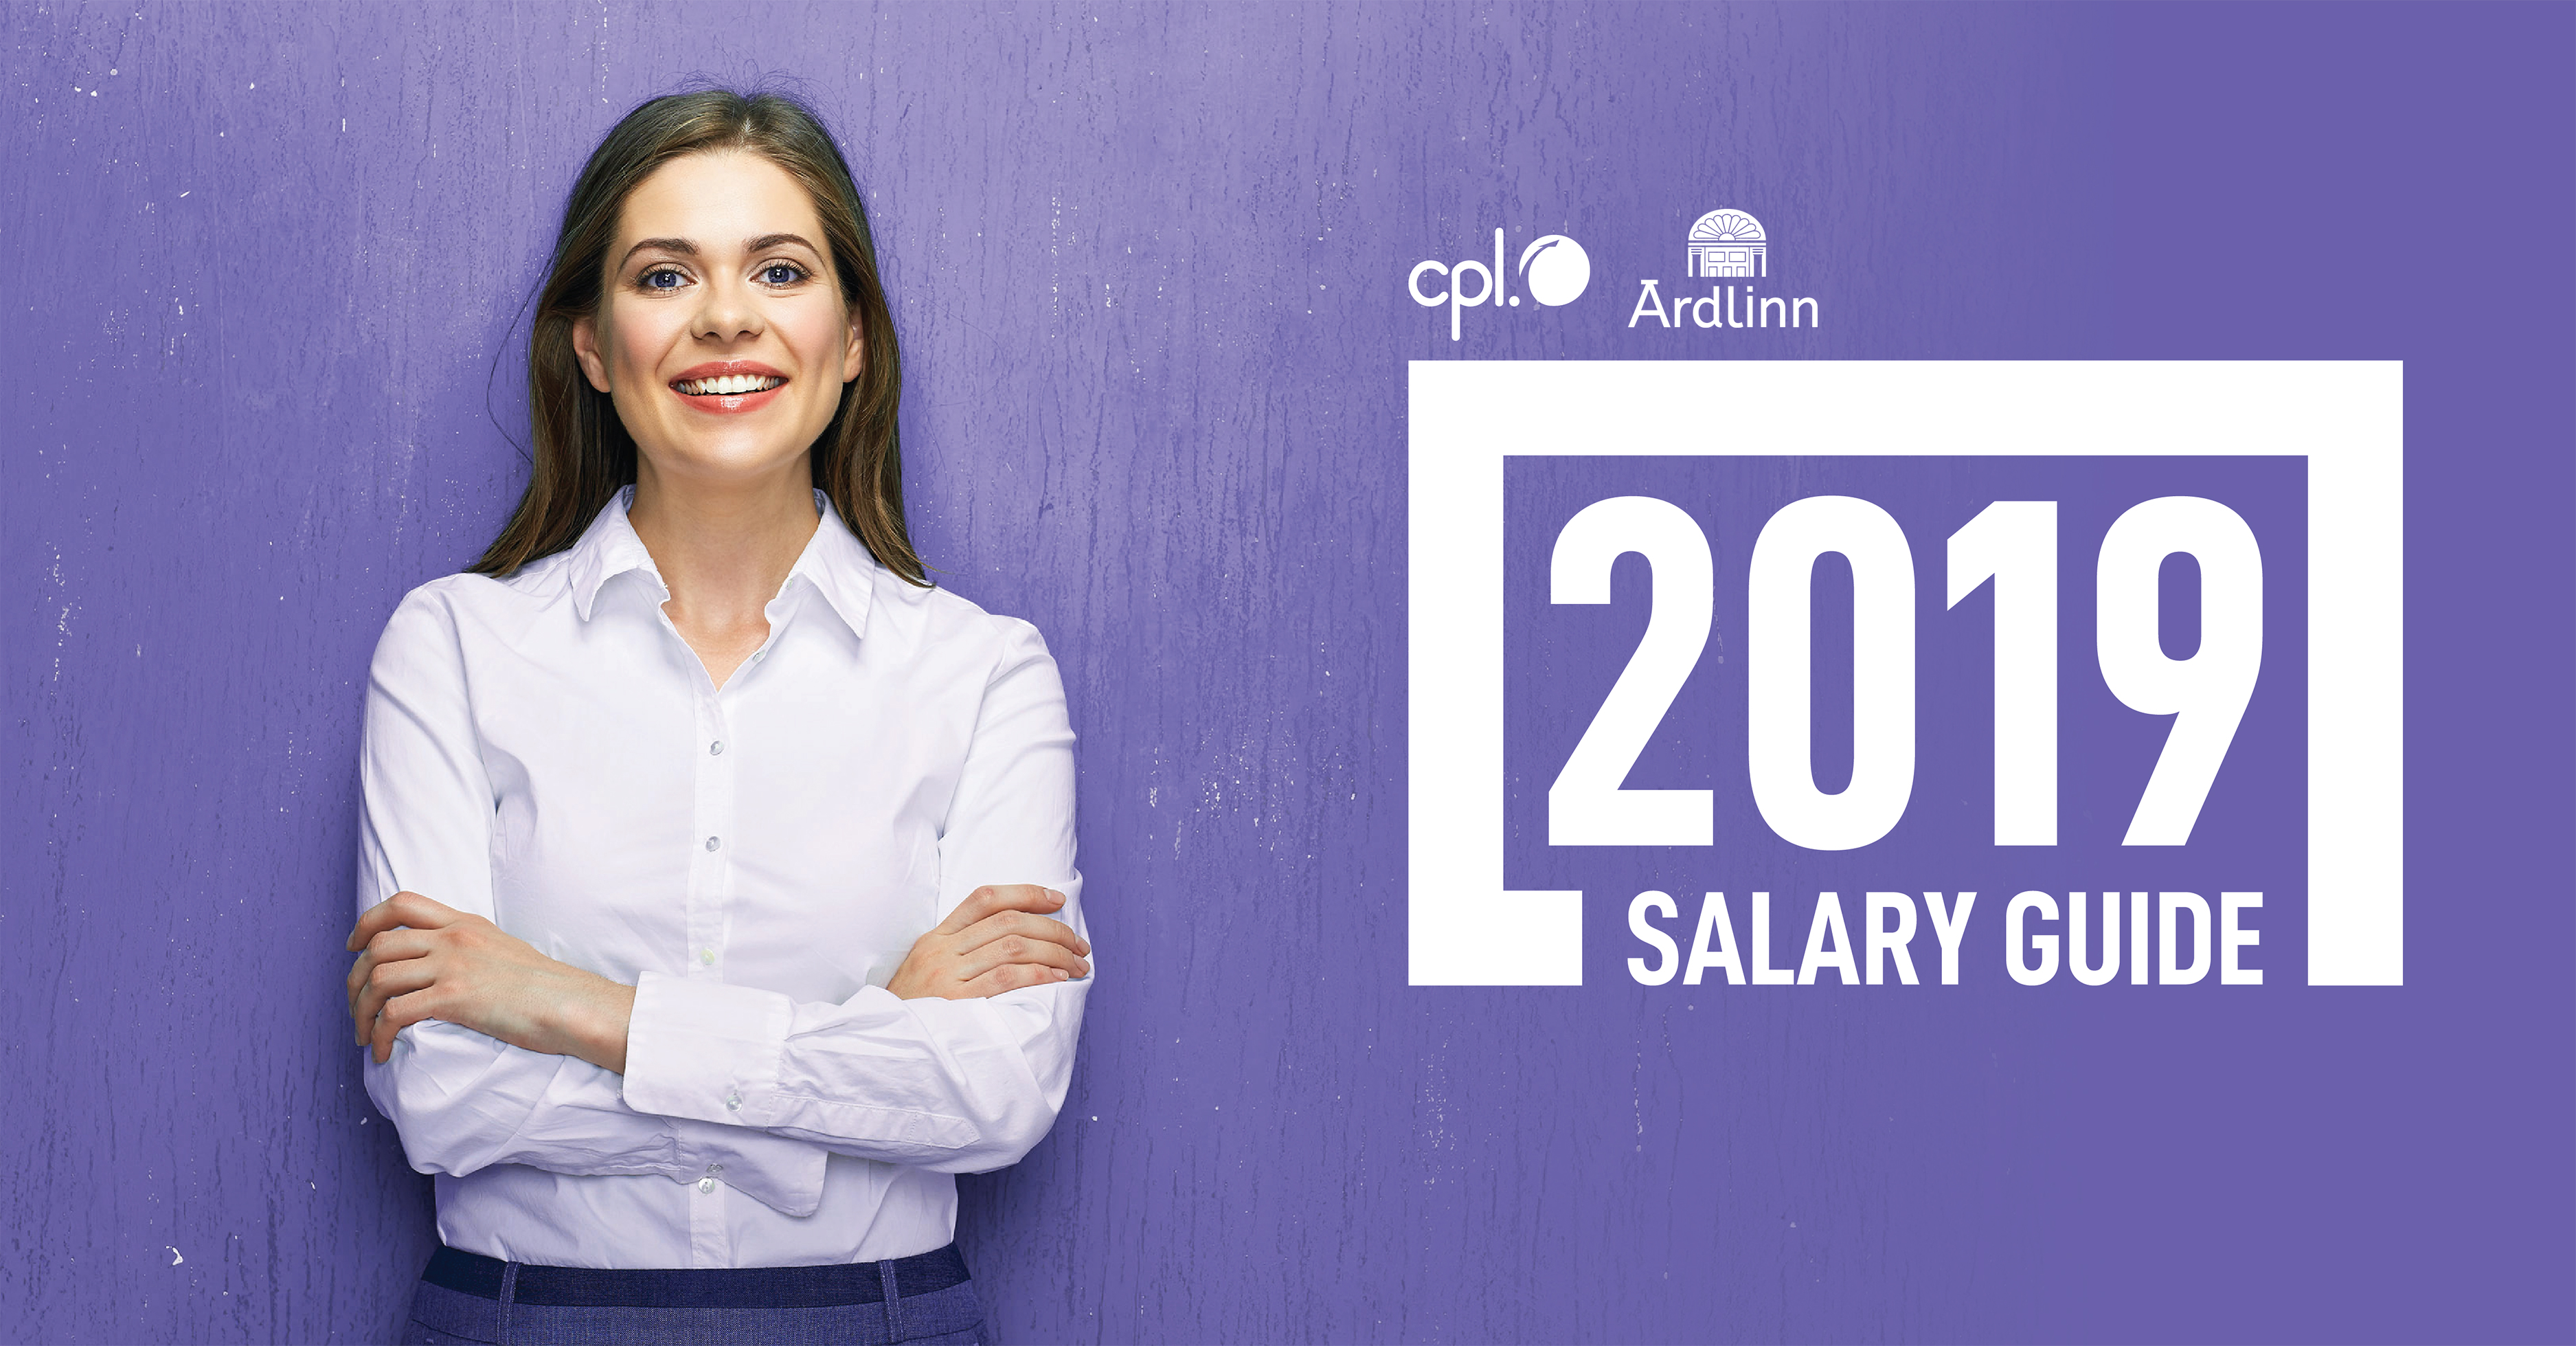 Ardlinn 2019 Salary Guide